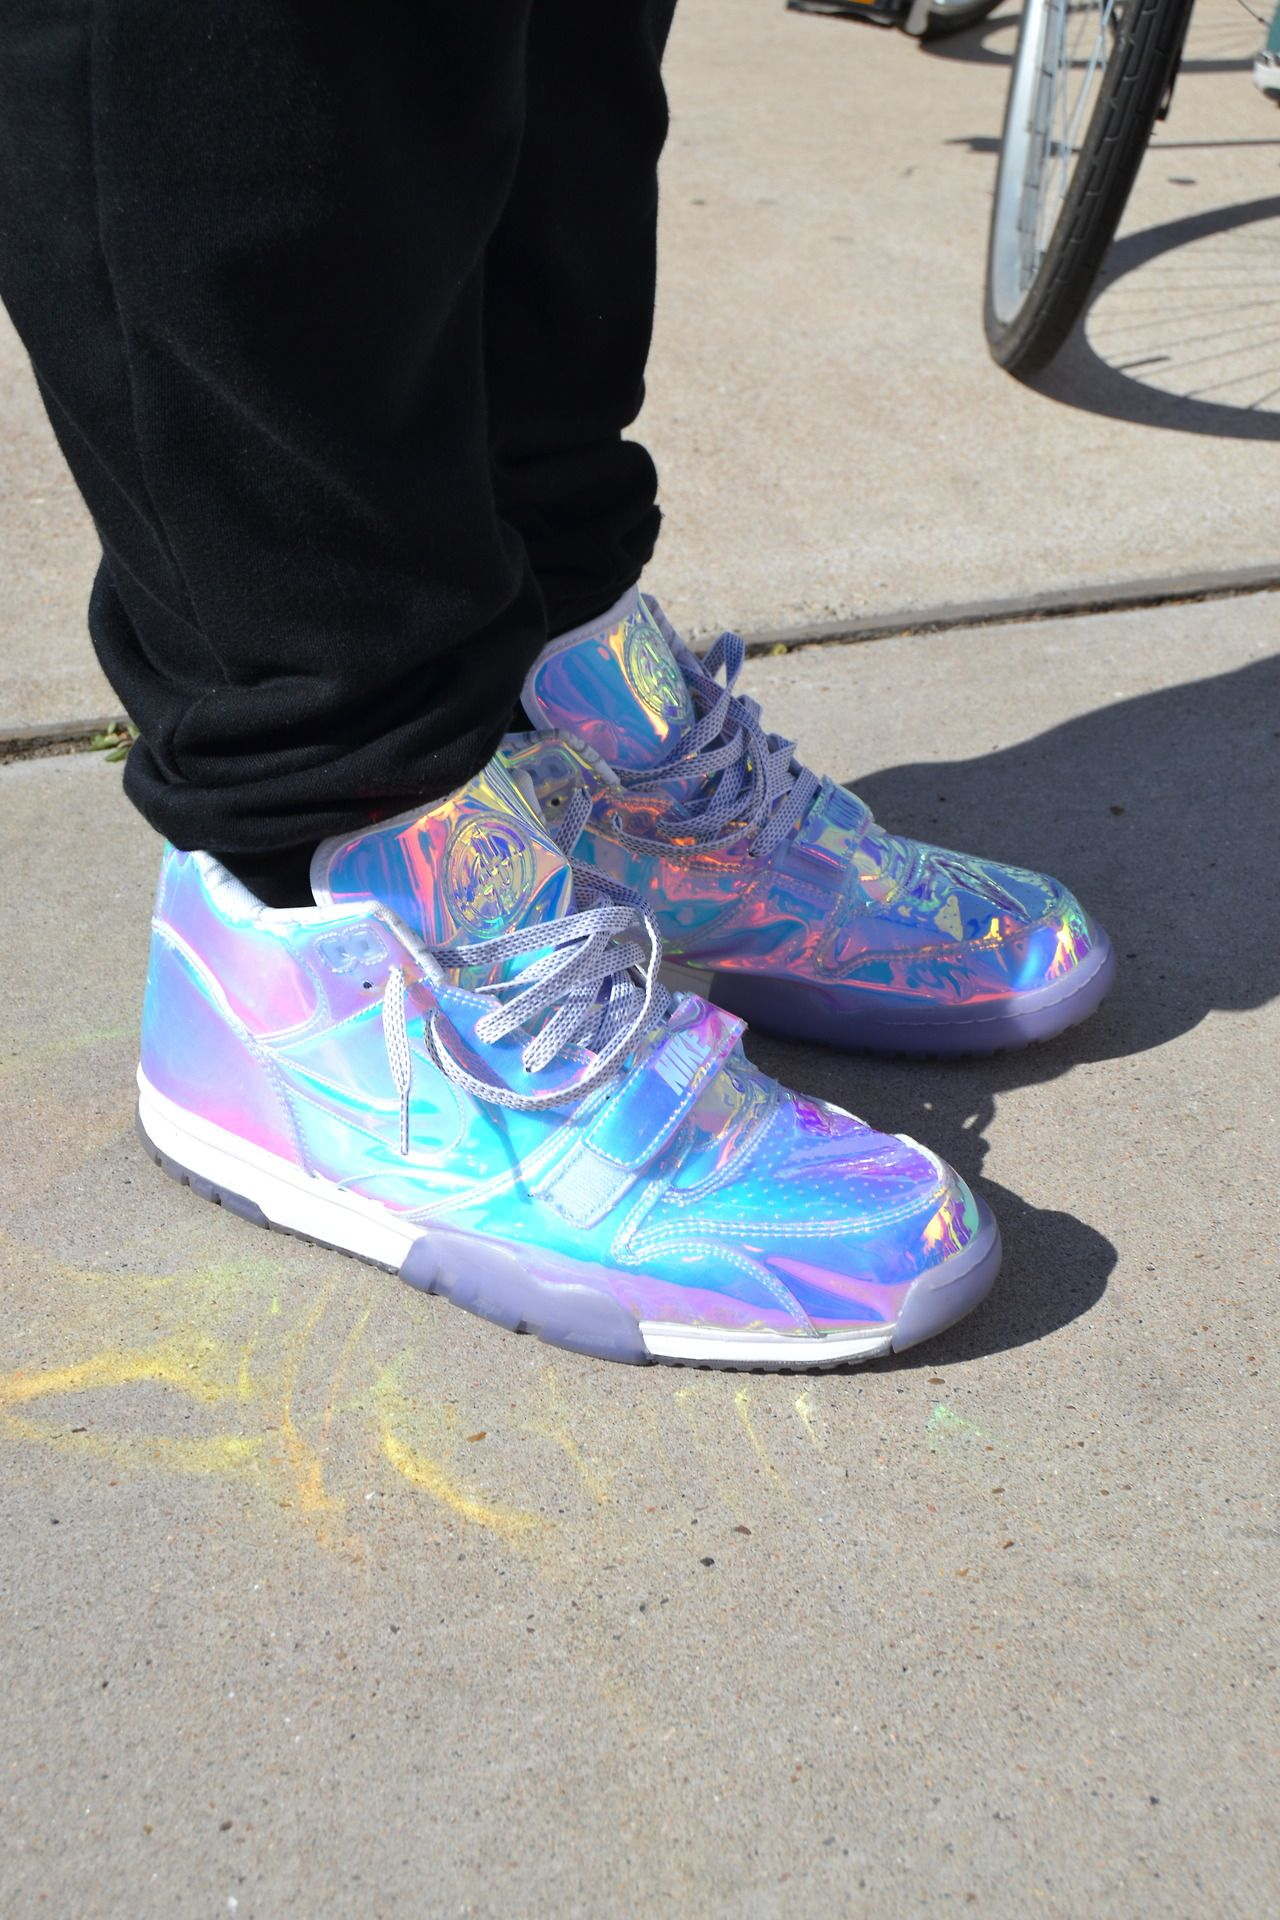 These iridescent Nike sneakers caught our attention while shooting street style at the @Staple event at #SXSW today